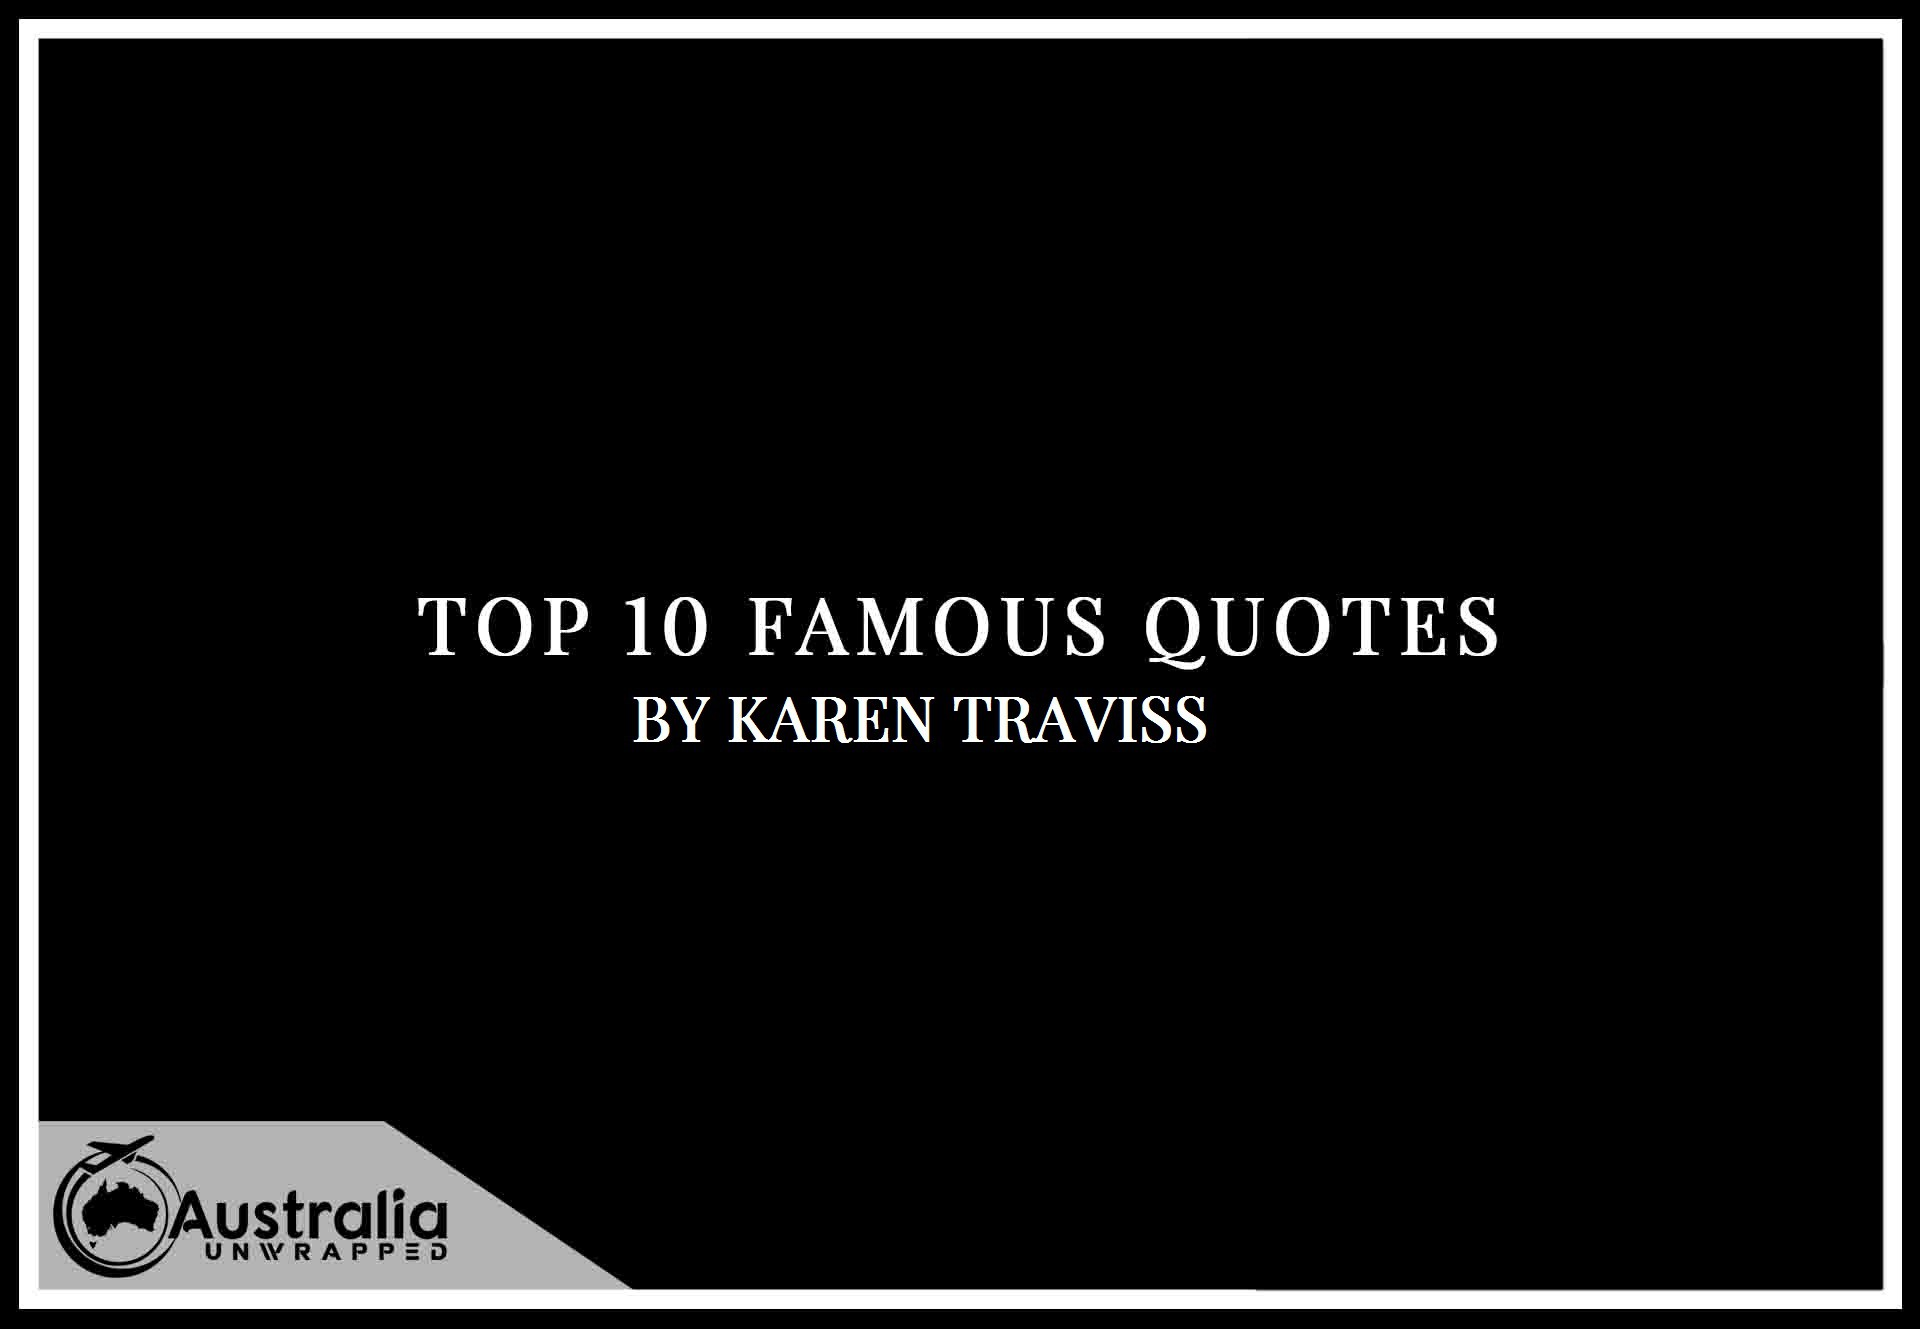 Karen Traviss's Top 10 Popular and Famous Quotes